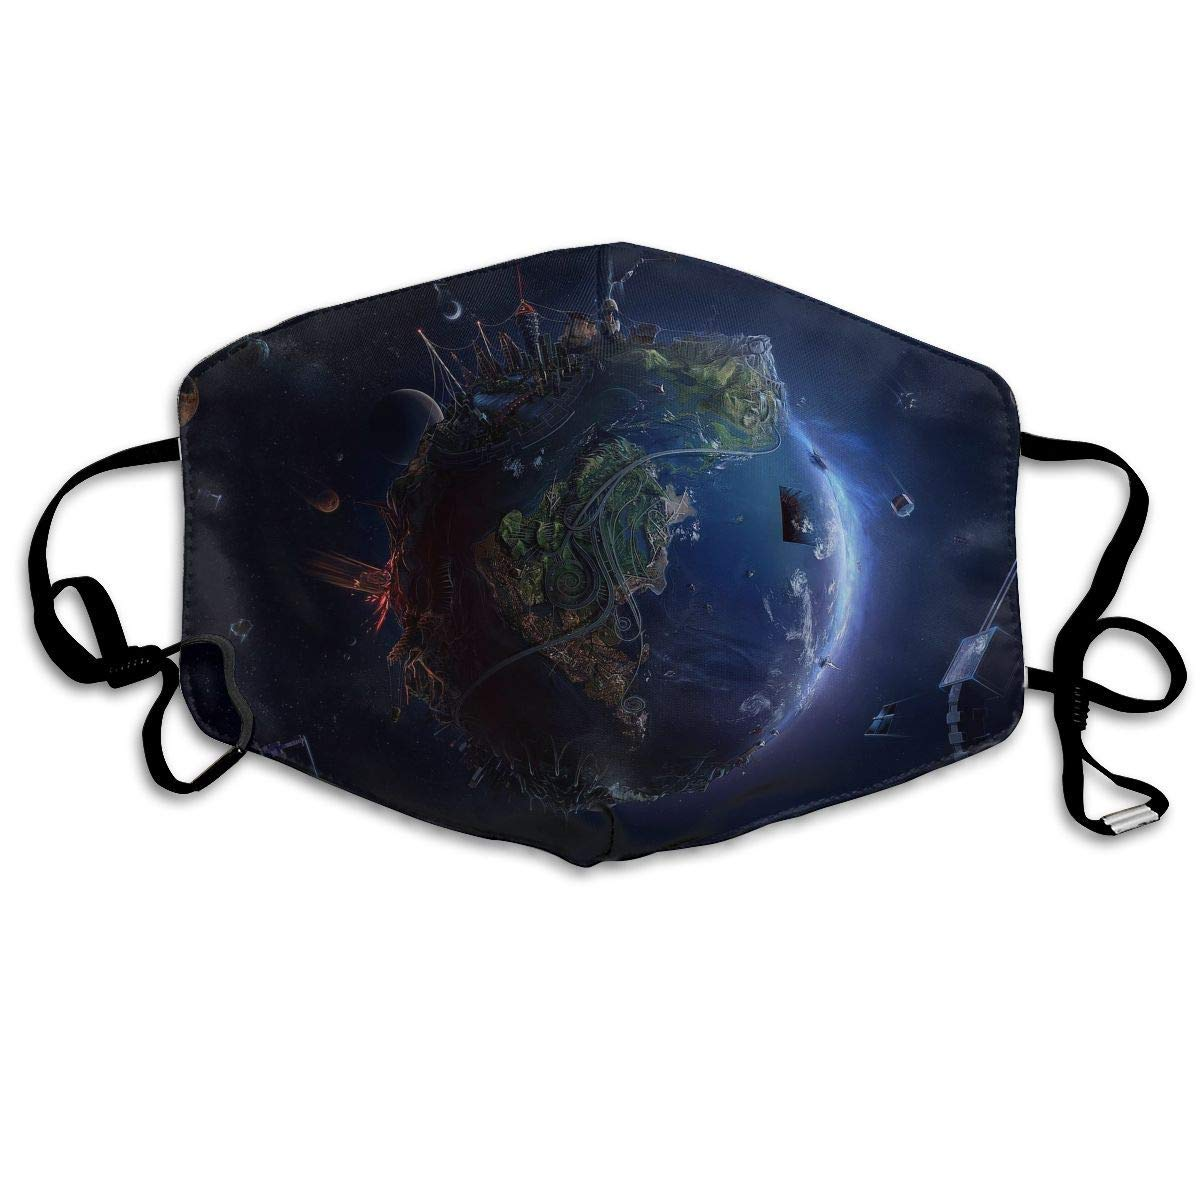 Daawqee Máscara de Boca, Antipolvo Cubierta de Boca Fantasy Earth Print Reusable Washable Earloop Máscara de Boca for Men Women